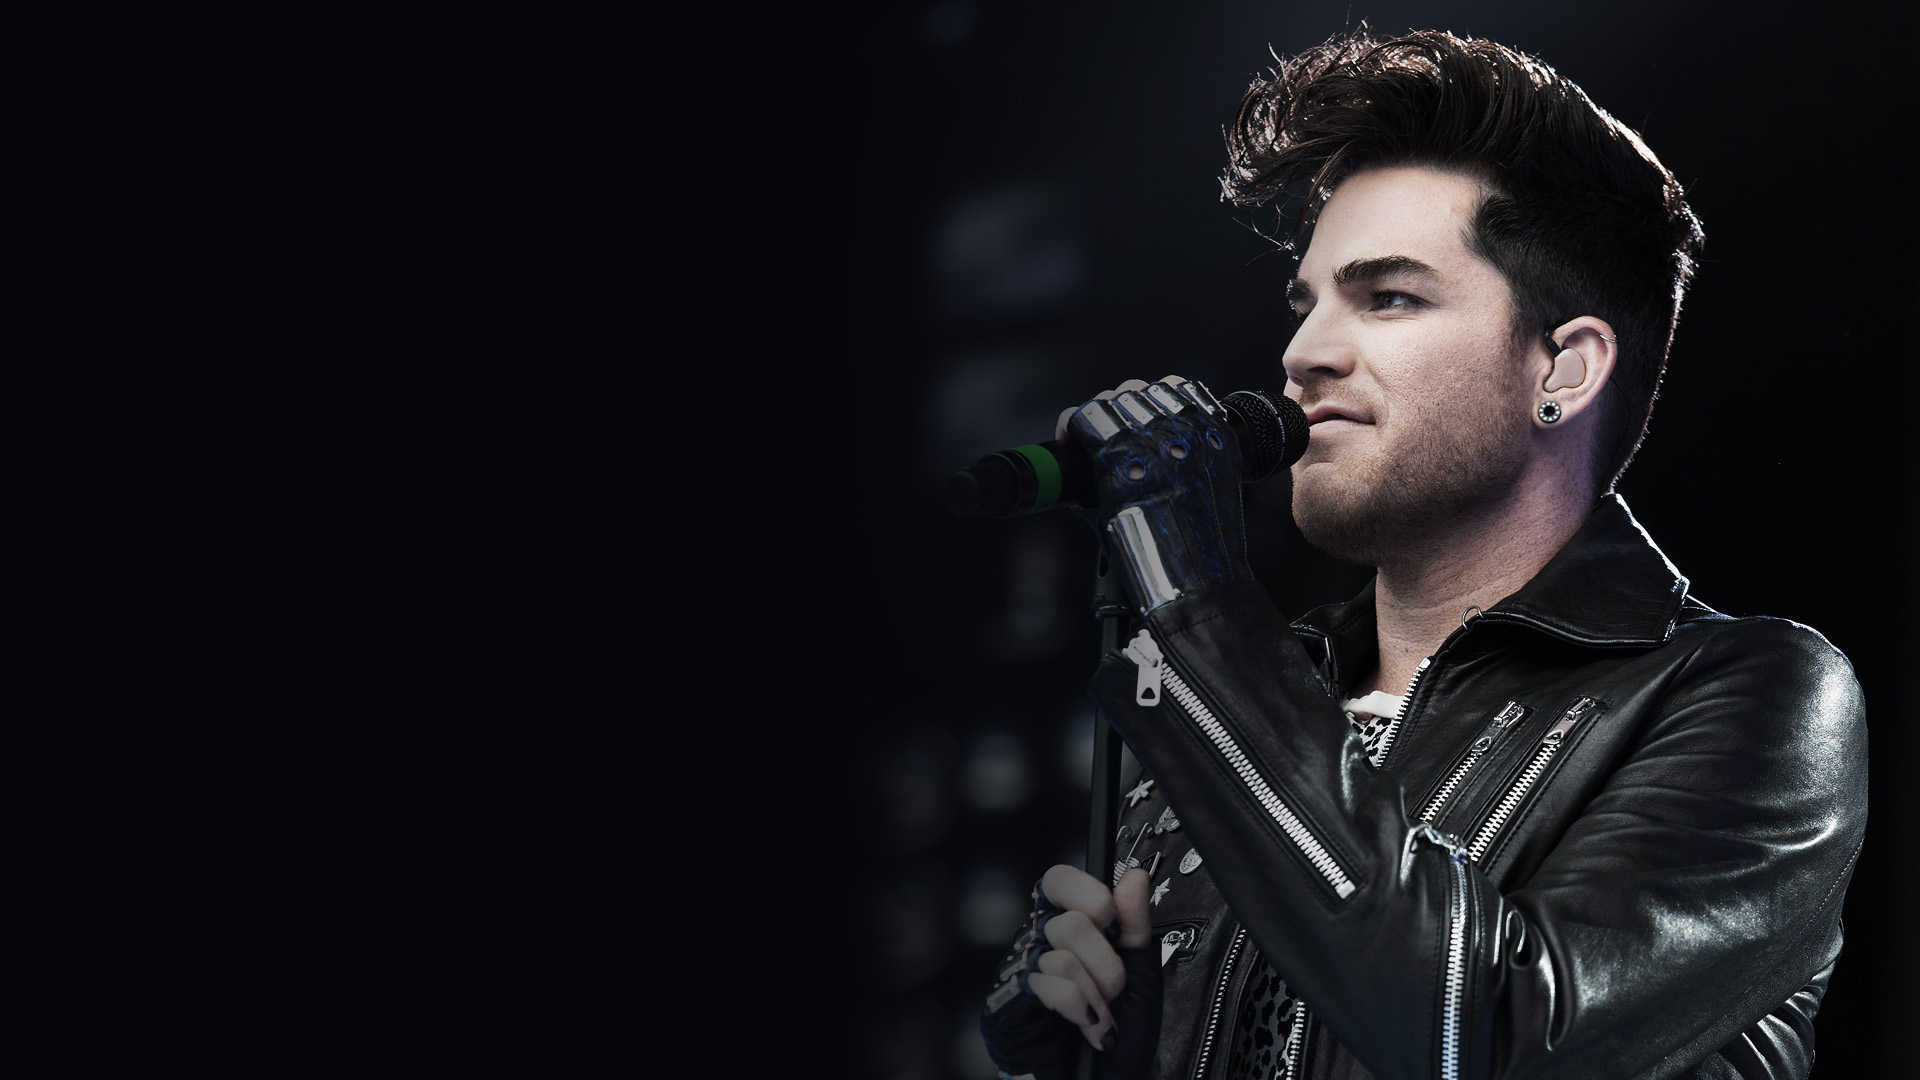 adam lambert singer wallpaper 12